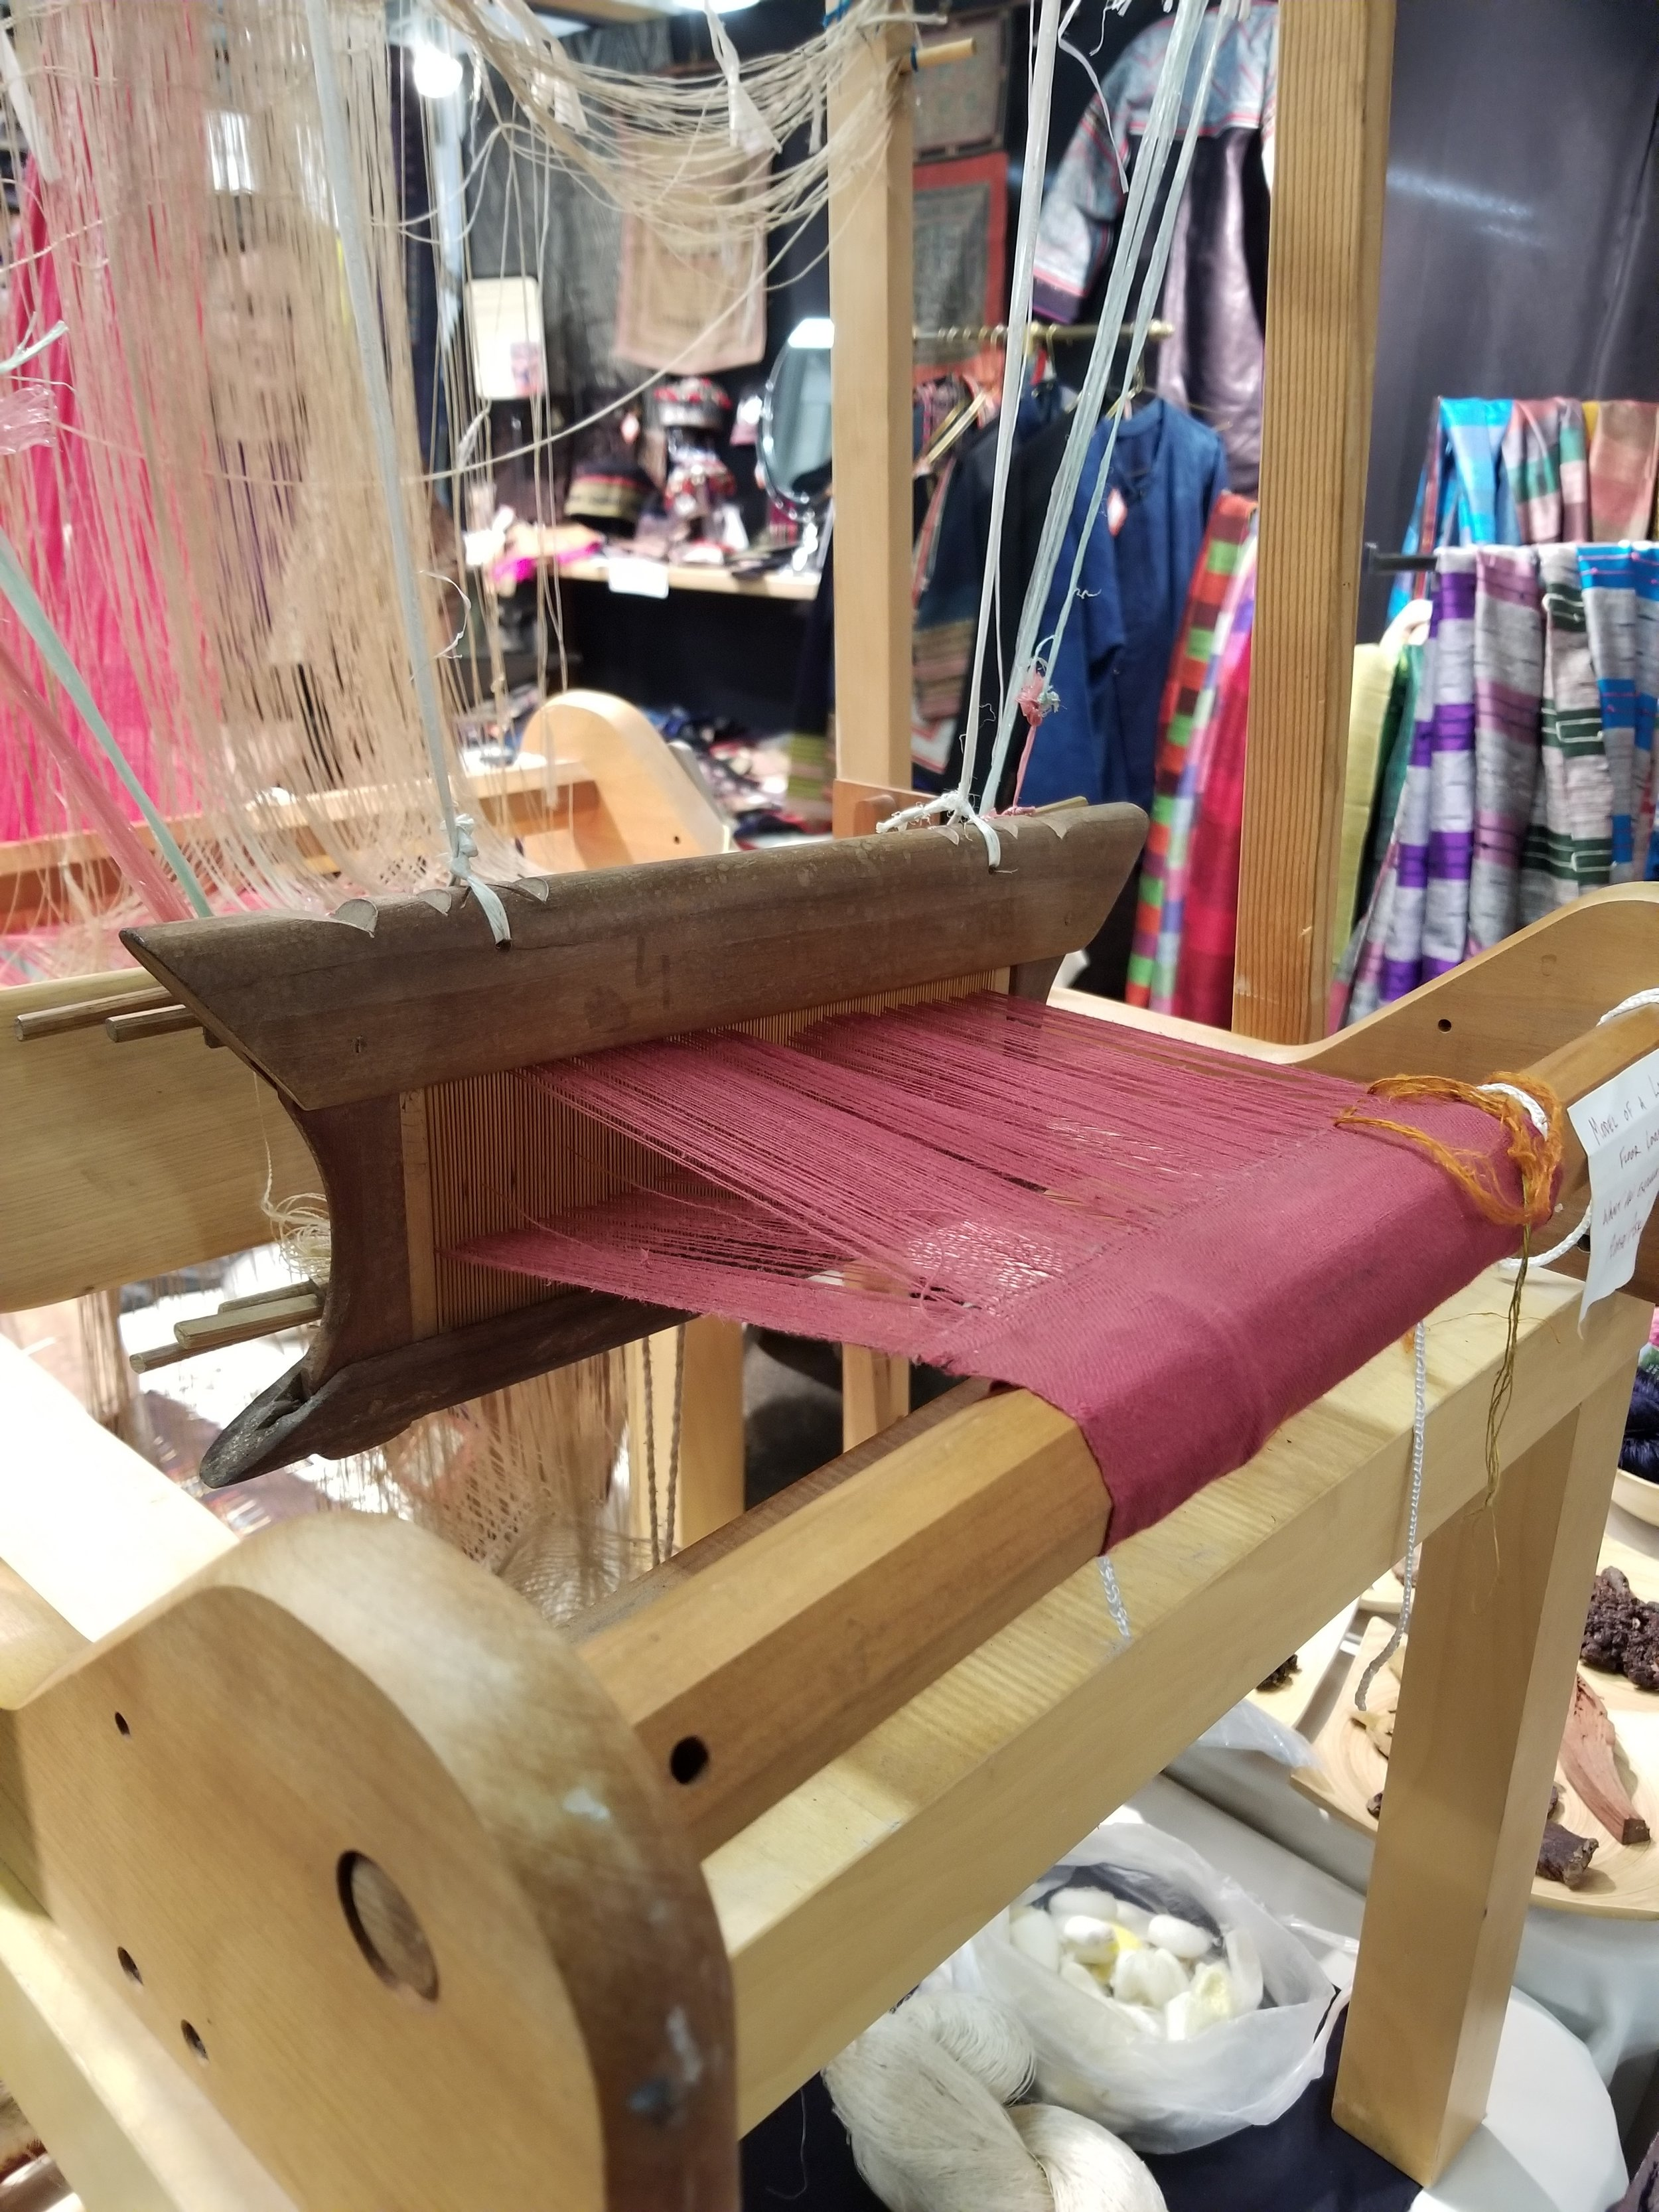 Traditional loom